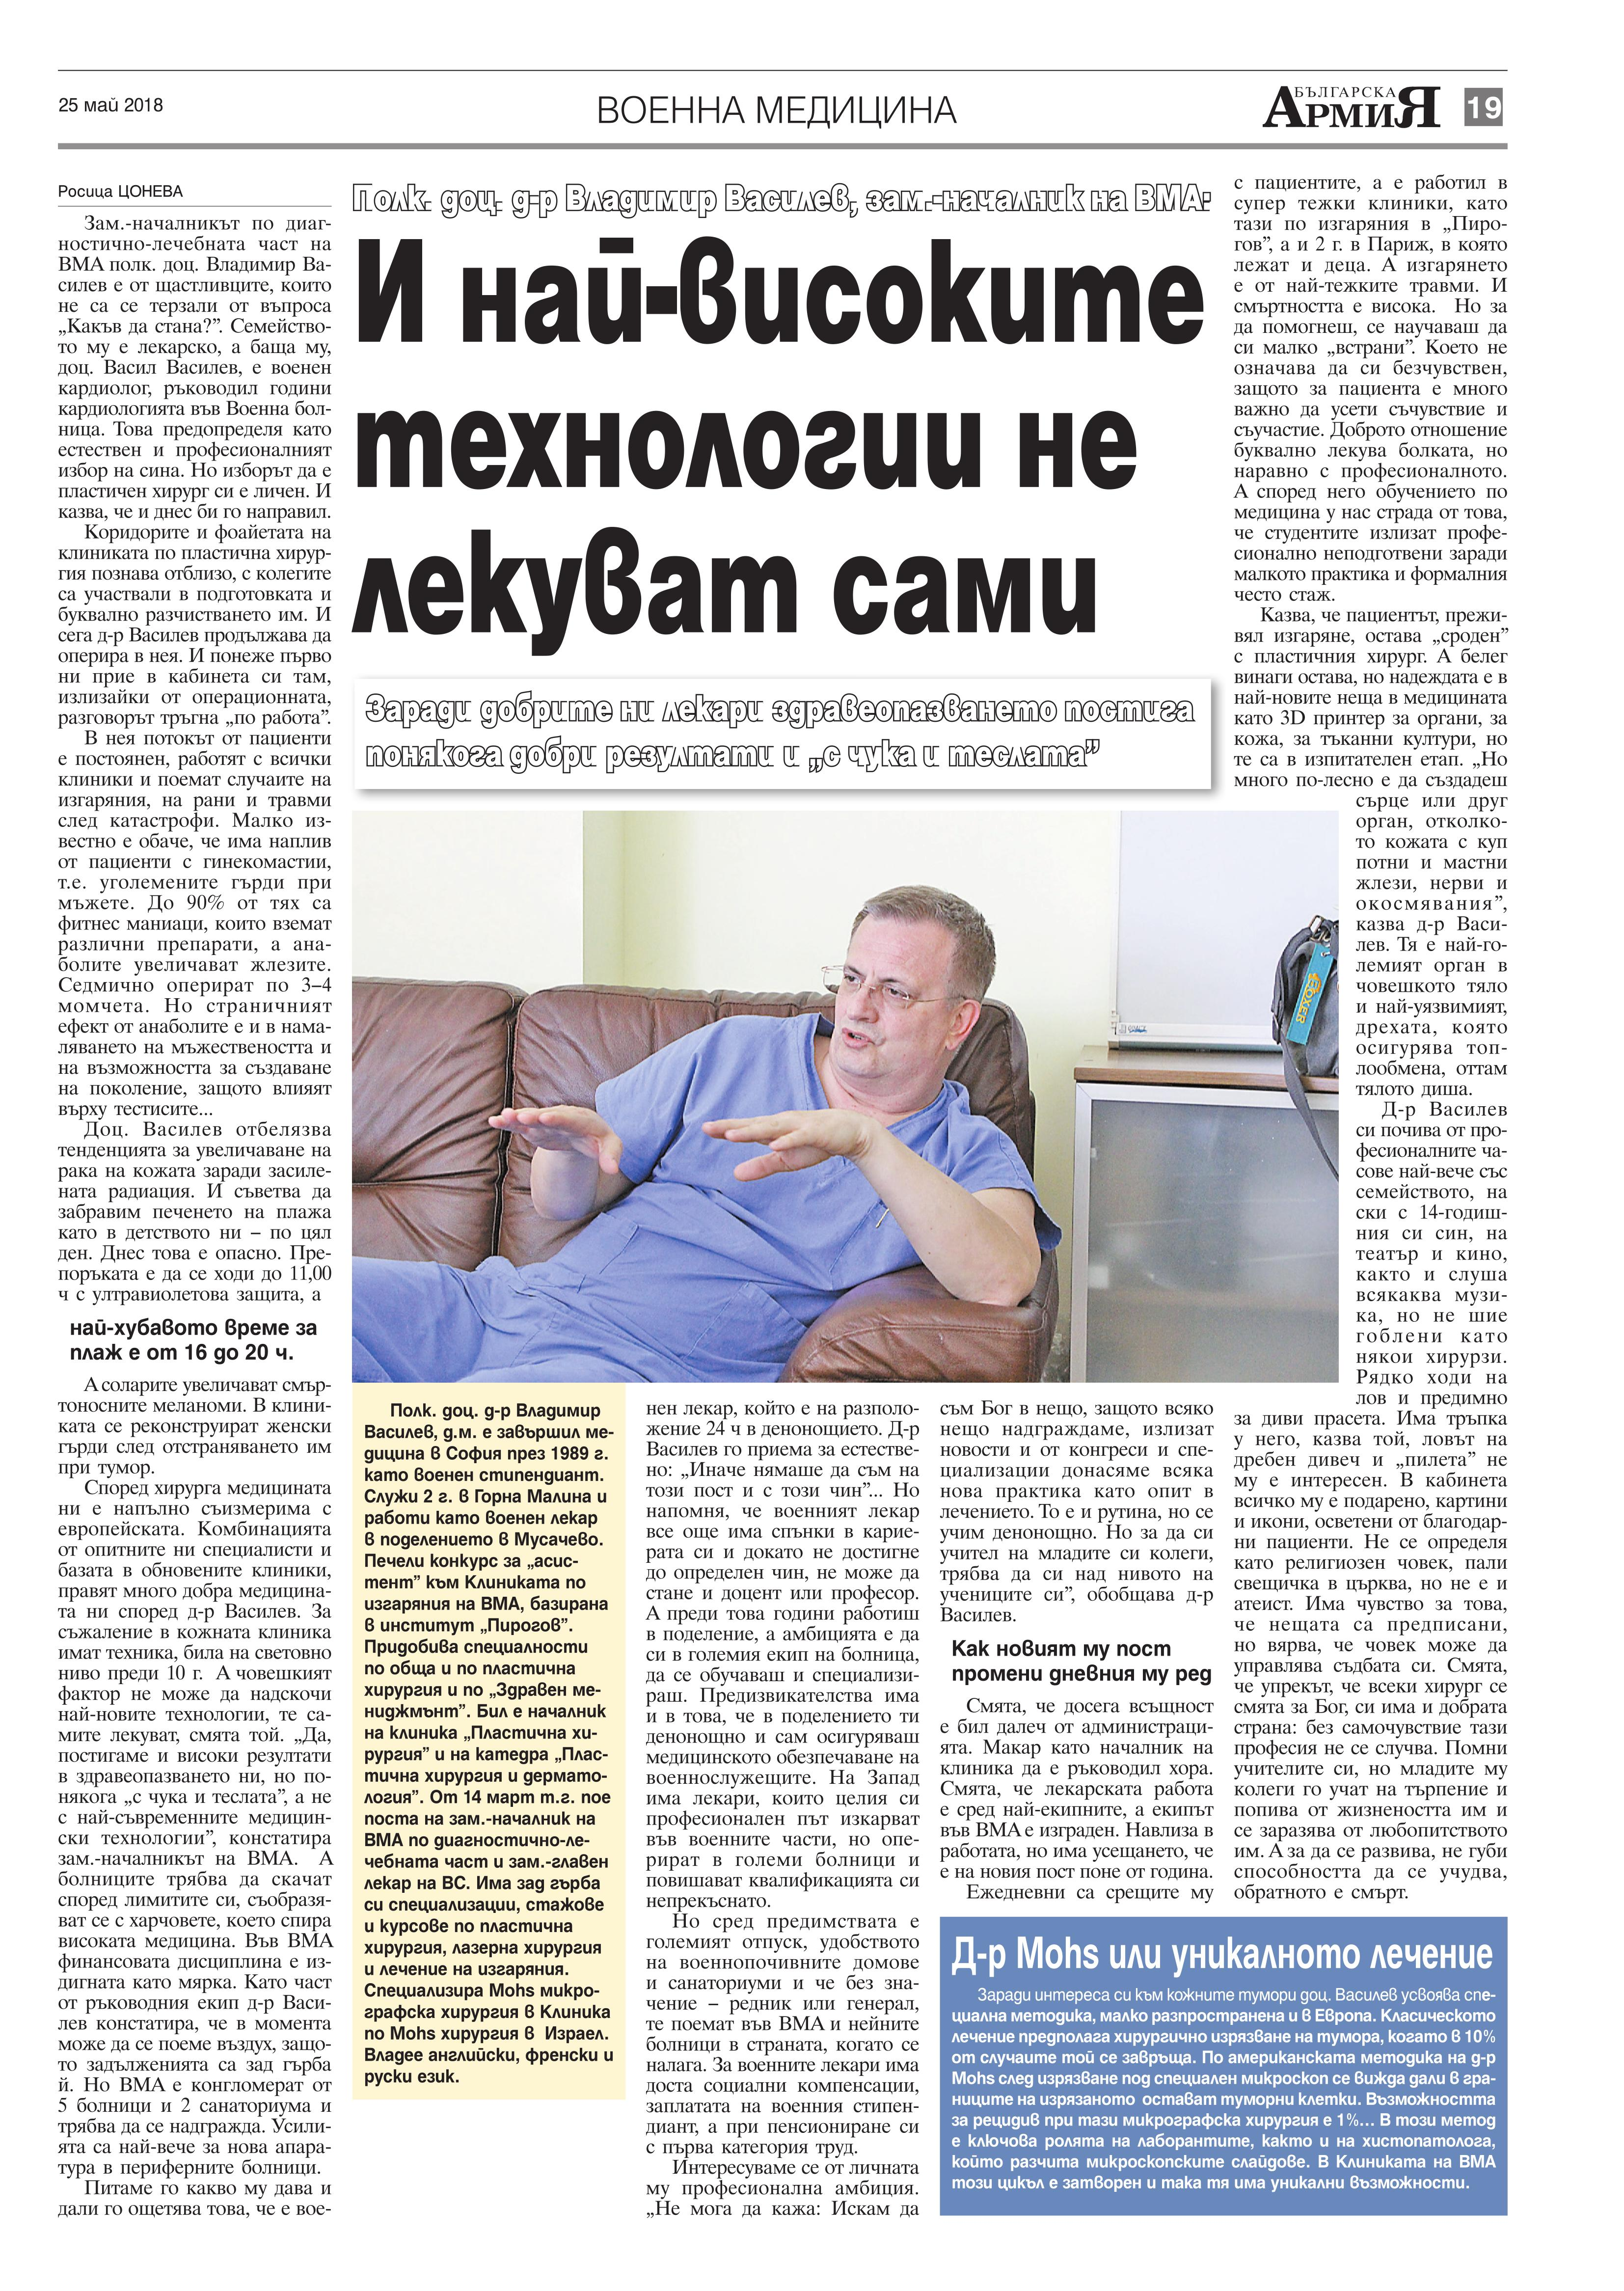 https://armymedia.bg/wp-content/uploads/2015/06/19.page1_-52.jpg